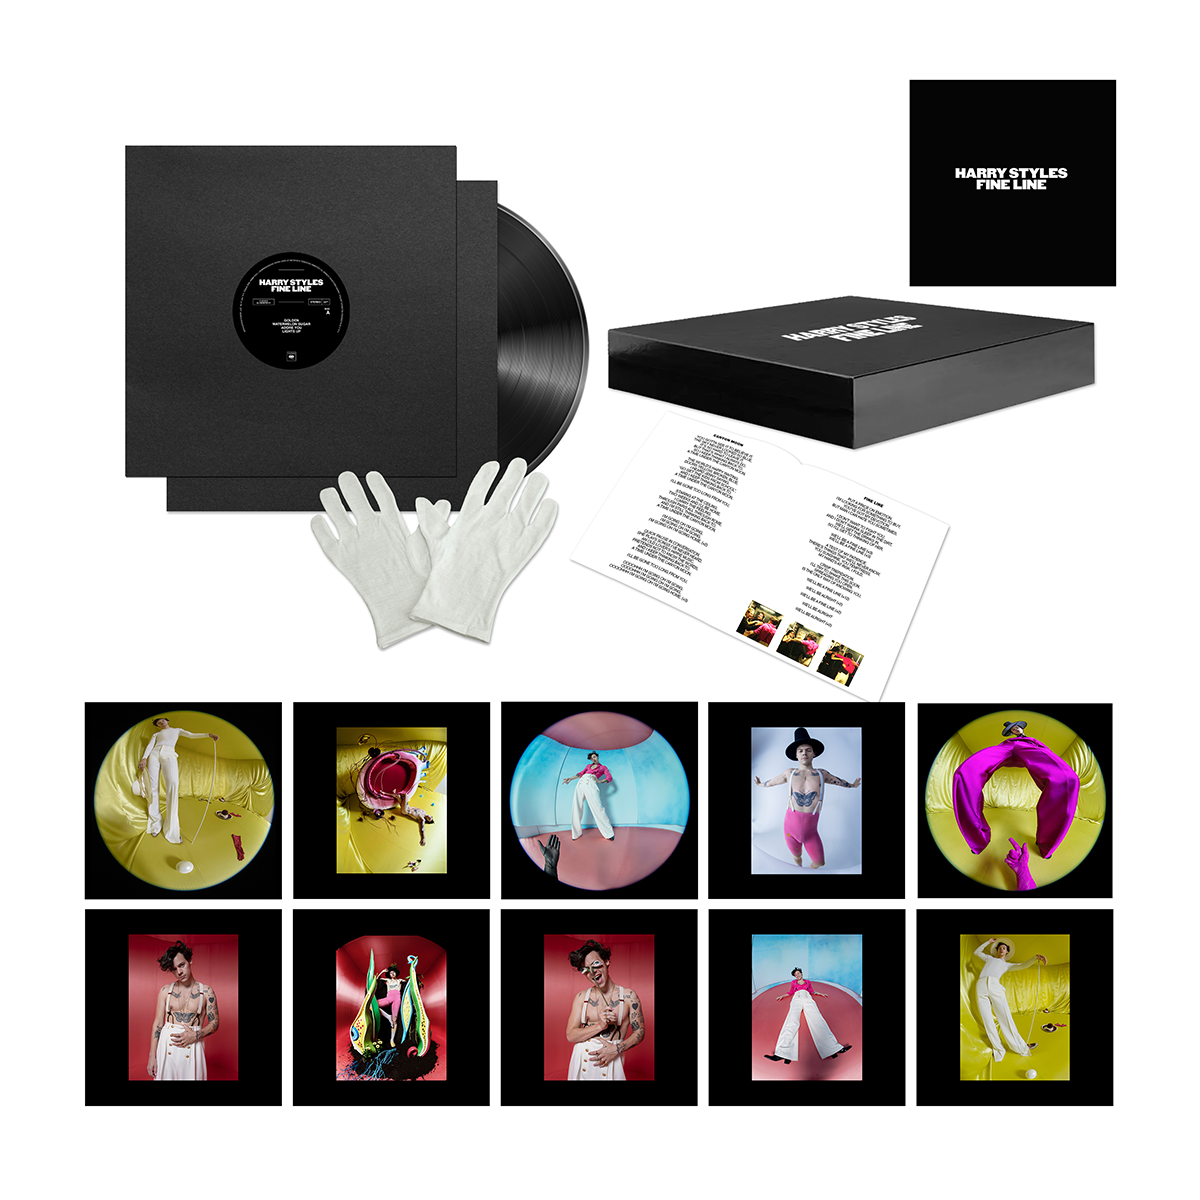 Fine Line - 1 Year Anniversary Limited Edition Vinyl Box Set